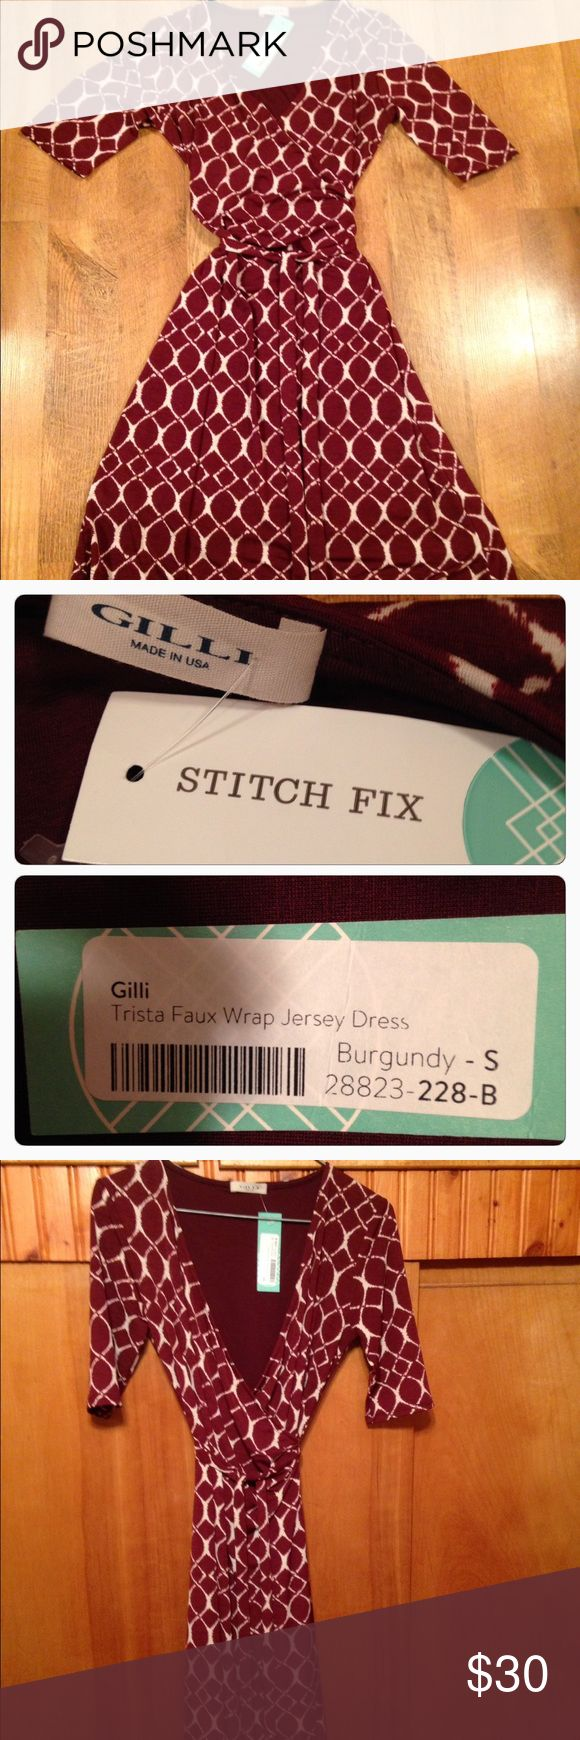 """Gilli Stitch Fix Faux wrap jersey dress Adorable and NWT Trista faux wrap jersey dress from Stitch Fix. Color is listed as burgundy, size is small, shoulder to hem is 38"""", width from armpit to armpit is Approximately 14"""" however this dress is 95% polyester 5%spandex, so there is stretch to it and the waist has a tie to tighten it. Please ask questions before purchasing Stitch Fix Dresses"""